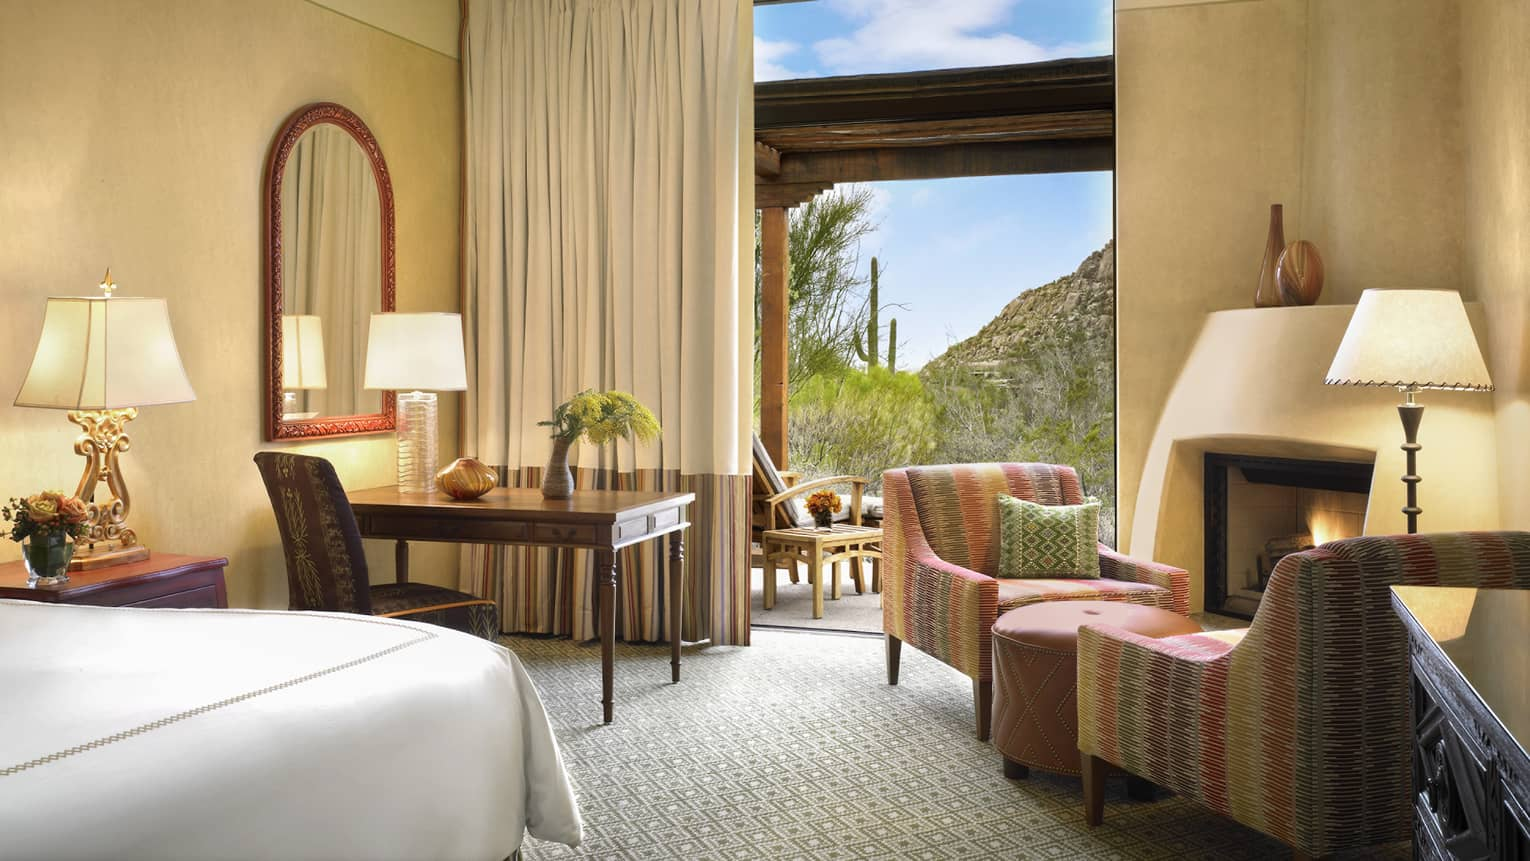 Premier Casita Room corner of bed, desk, armchairs by gas fireplace, mountain views through open balcony door